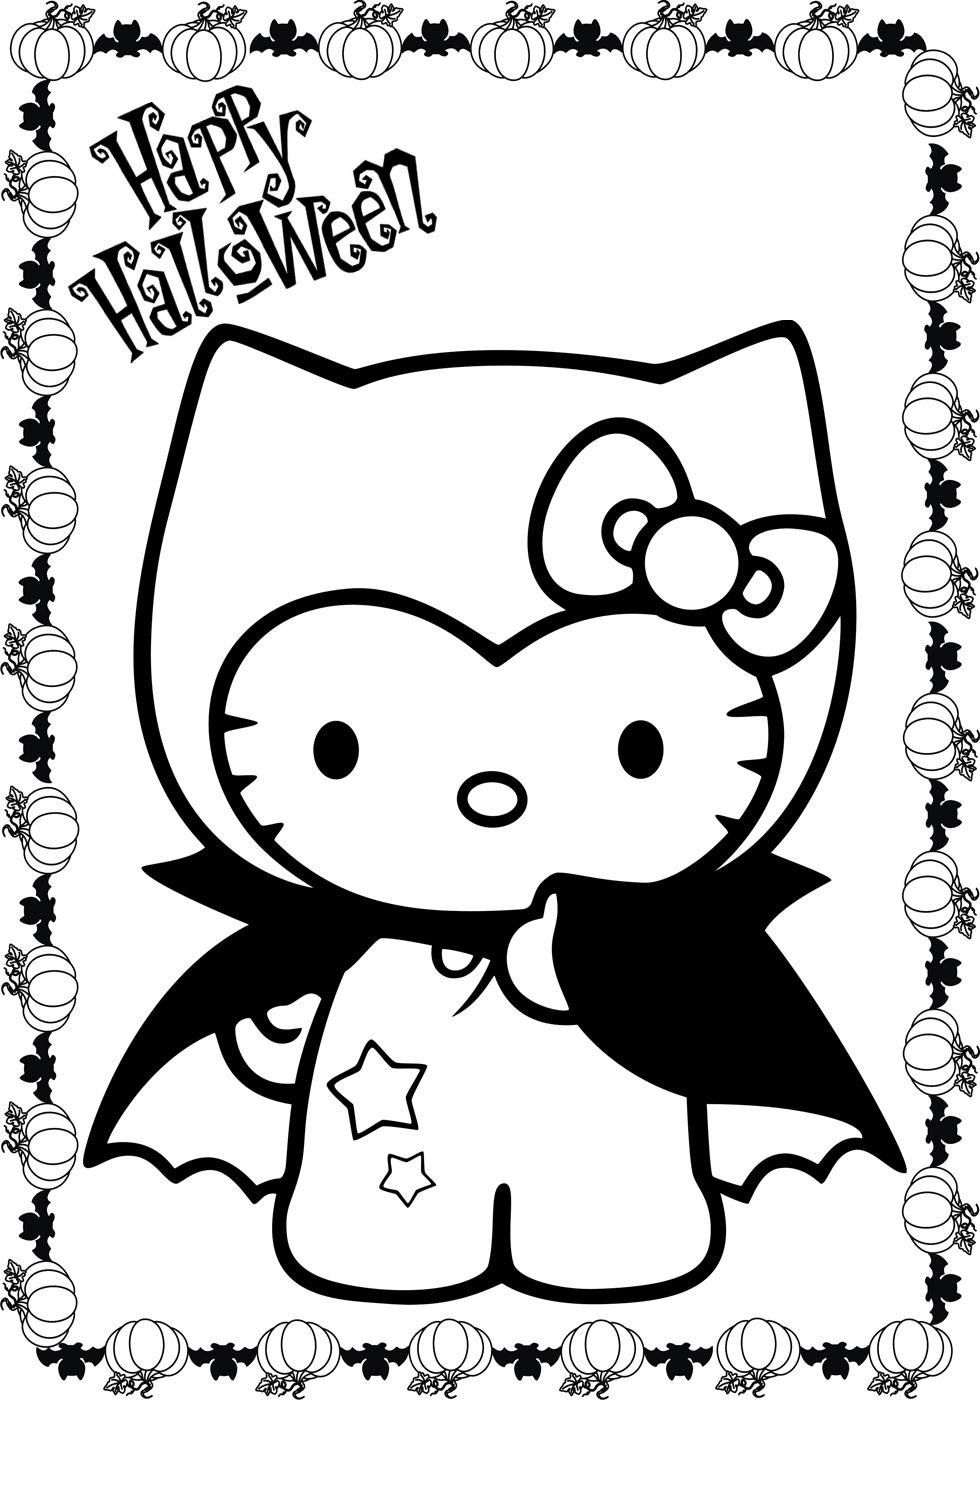 Halloween Cat Coloring Pages Free Halloween Kitty Coloring Pages Download Free Clip Art In 2020 Hello Kitty Coloring Hello Kitty Colouring Pages Hello Kitty Halloween